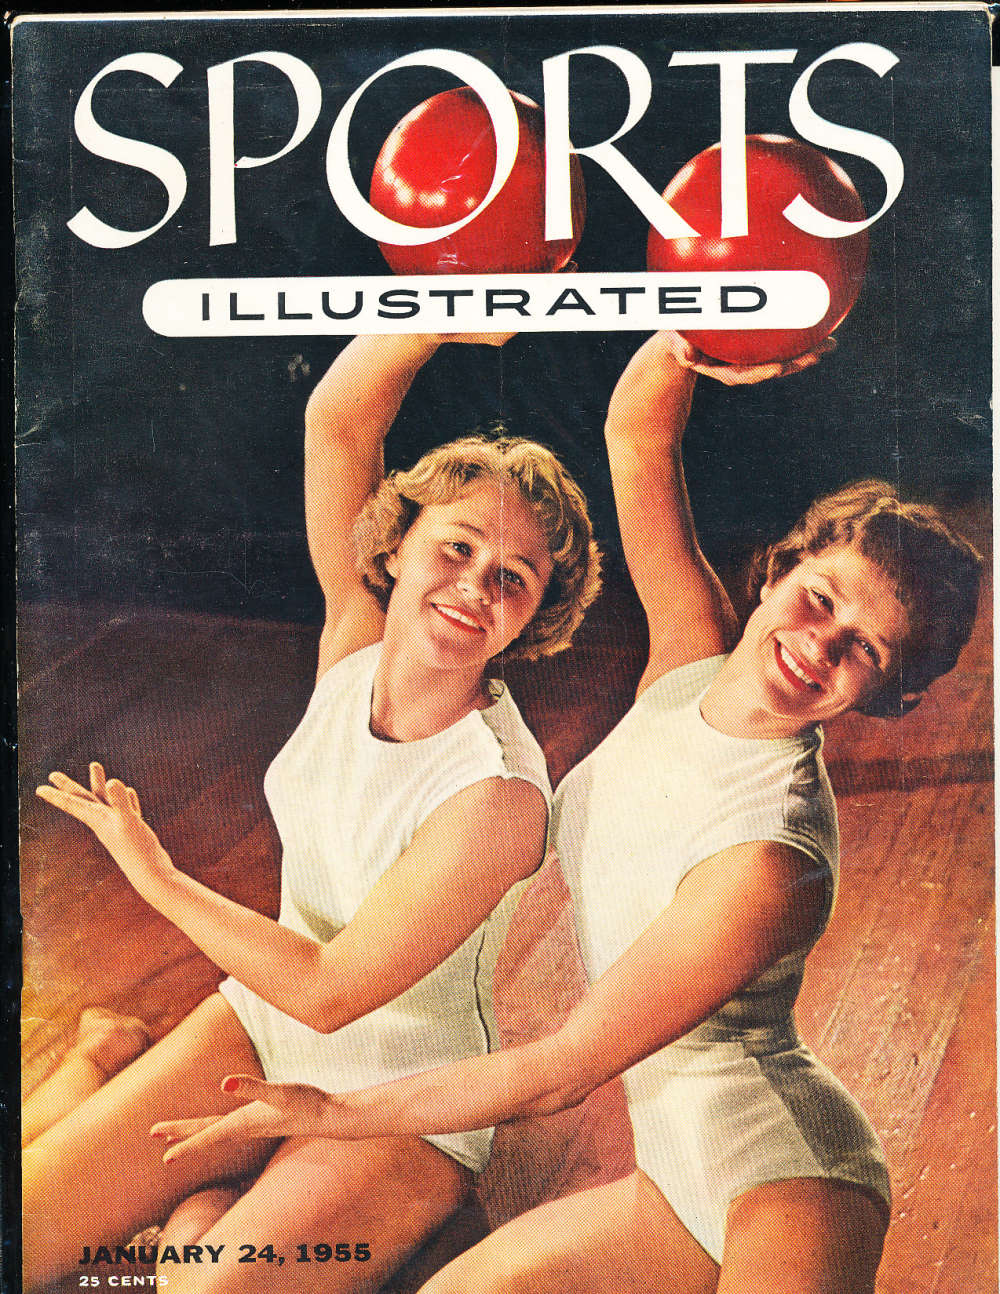 1/24 1955 Sports Illustrated no label  newsstand nr mt sibx3